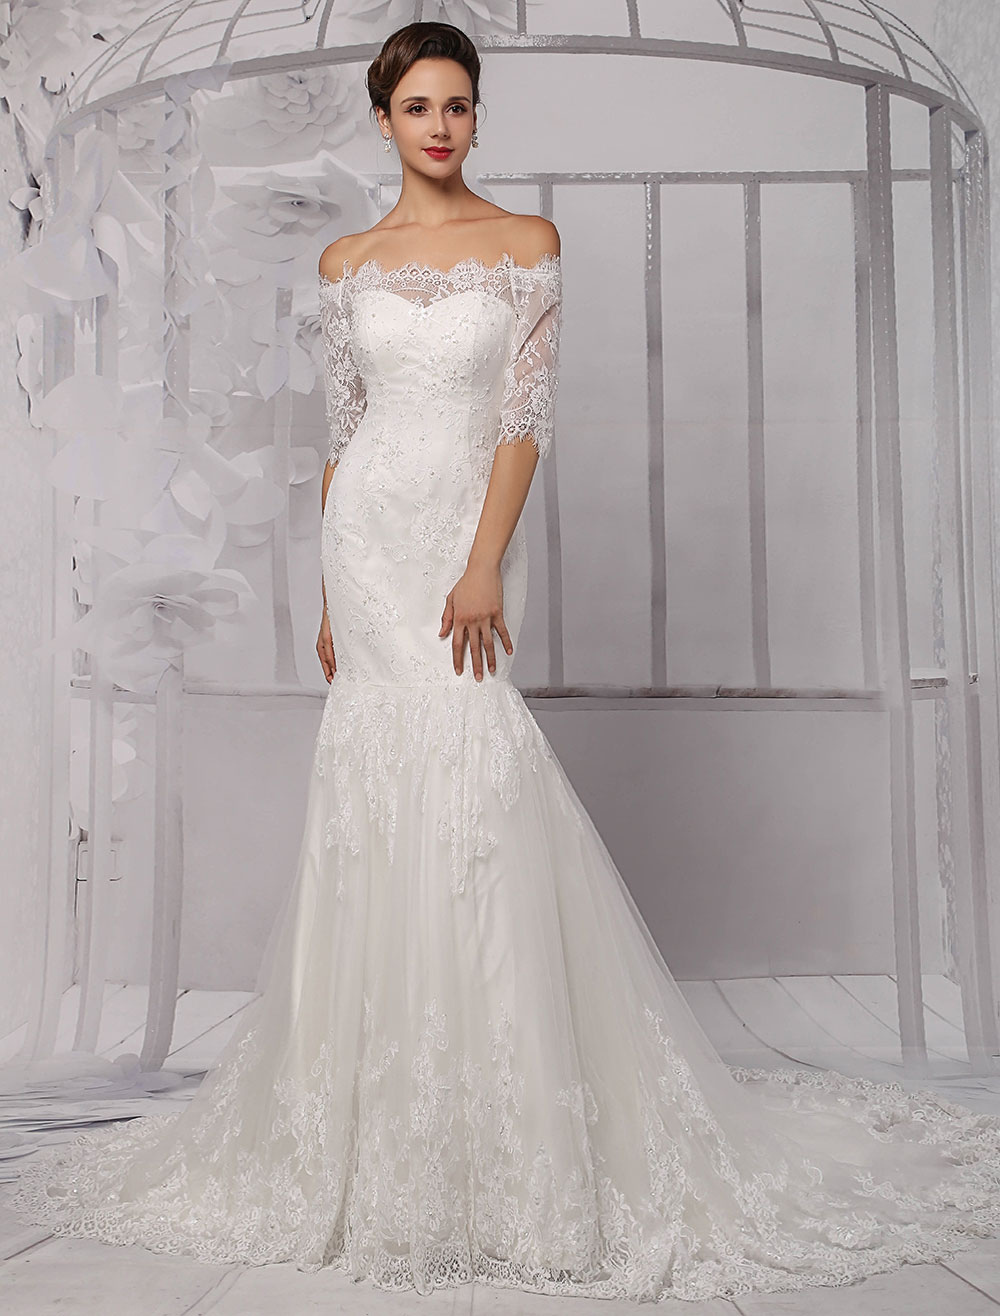 68fd6e9e92 Half Sleeve Off the Shoulder Lace Wedding Dress in Trumpet Style Milanoo -  Milanoo.com